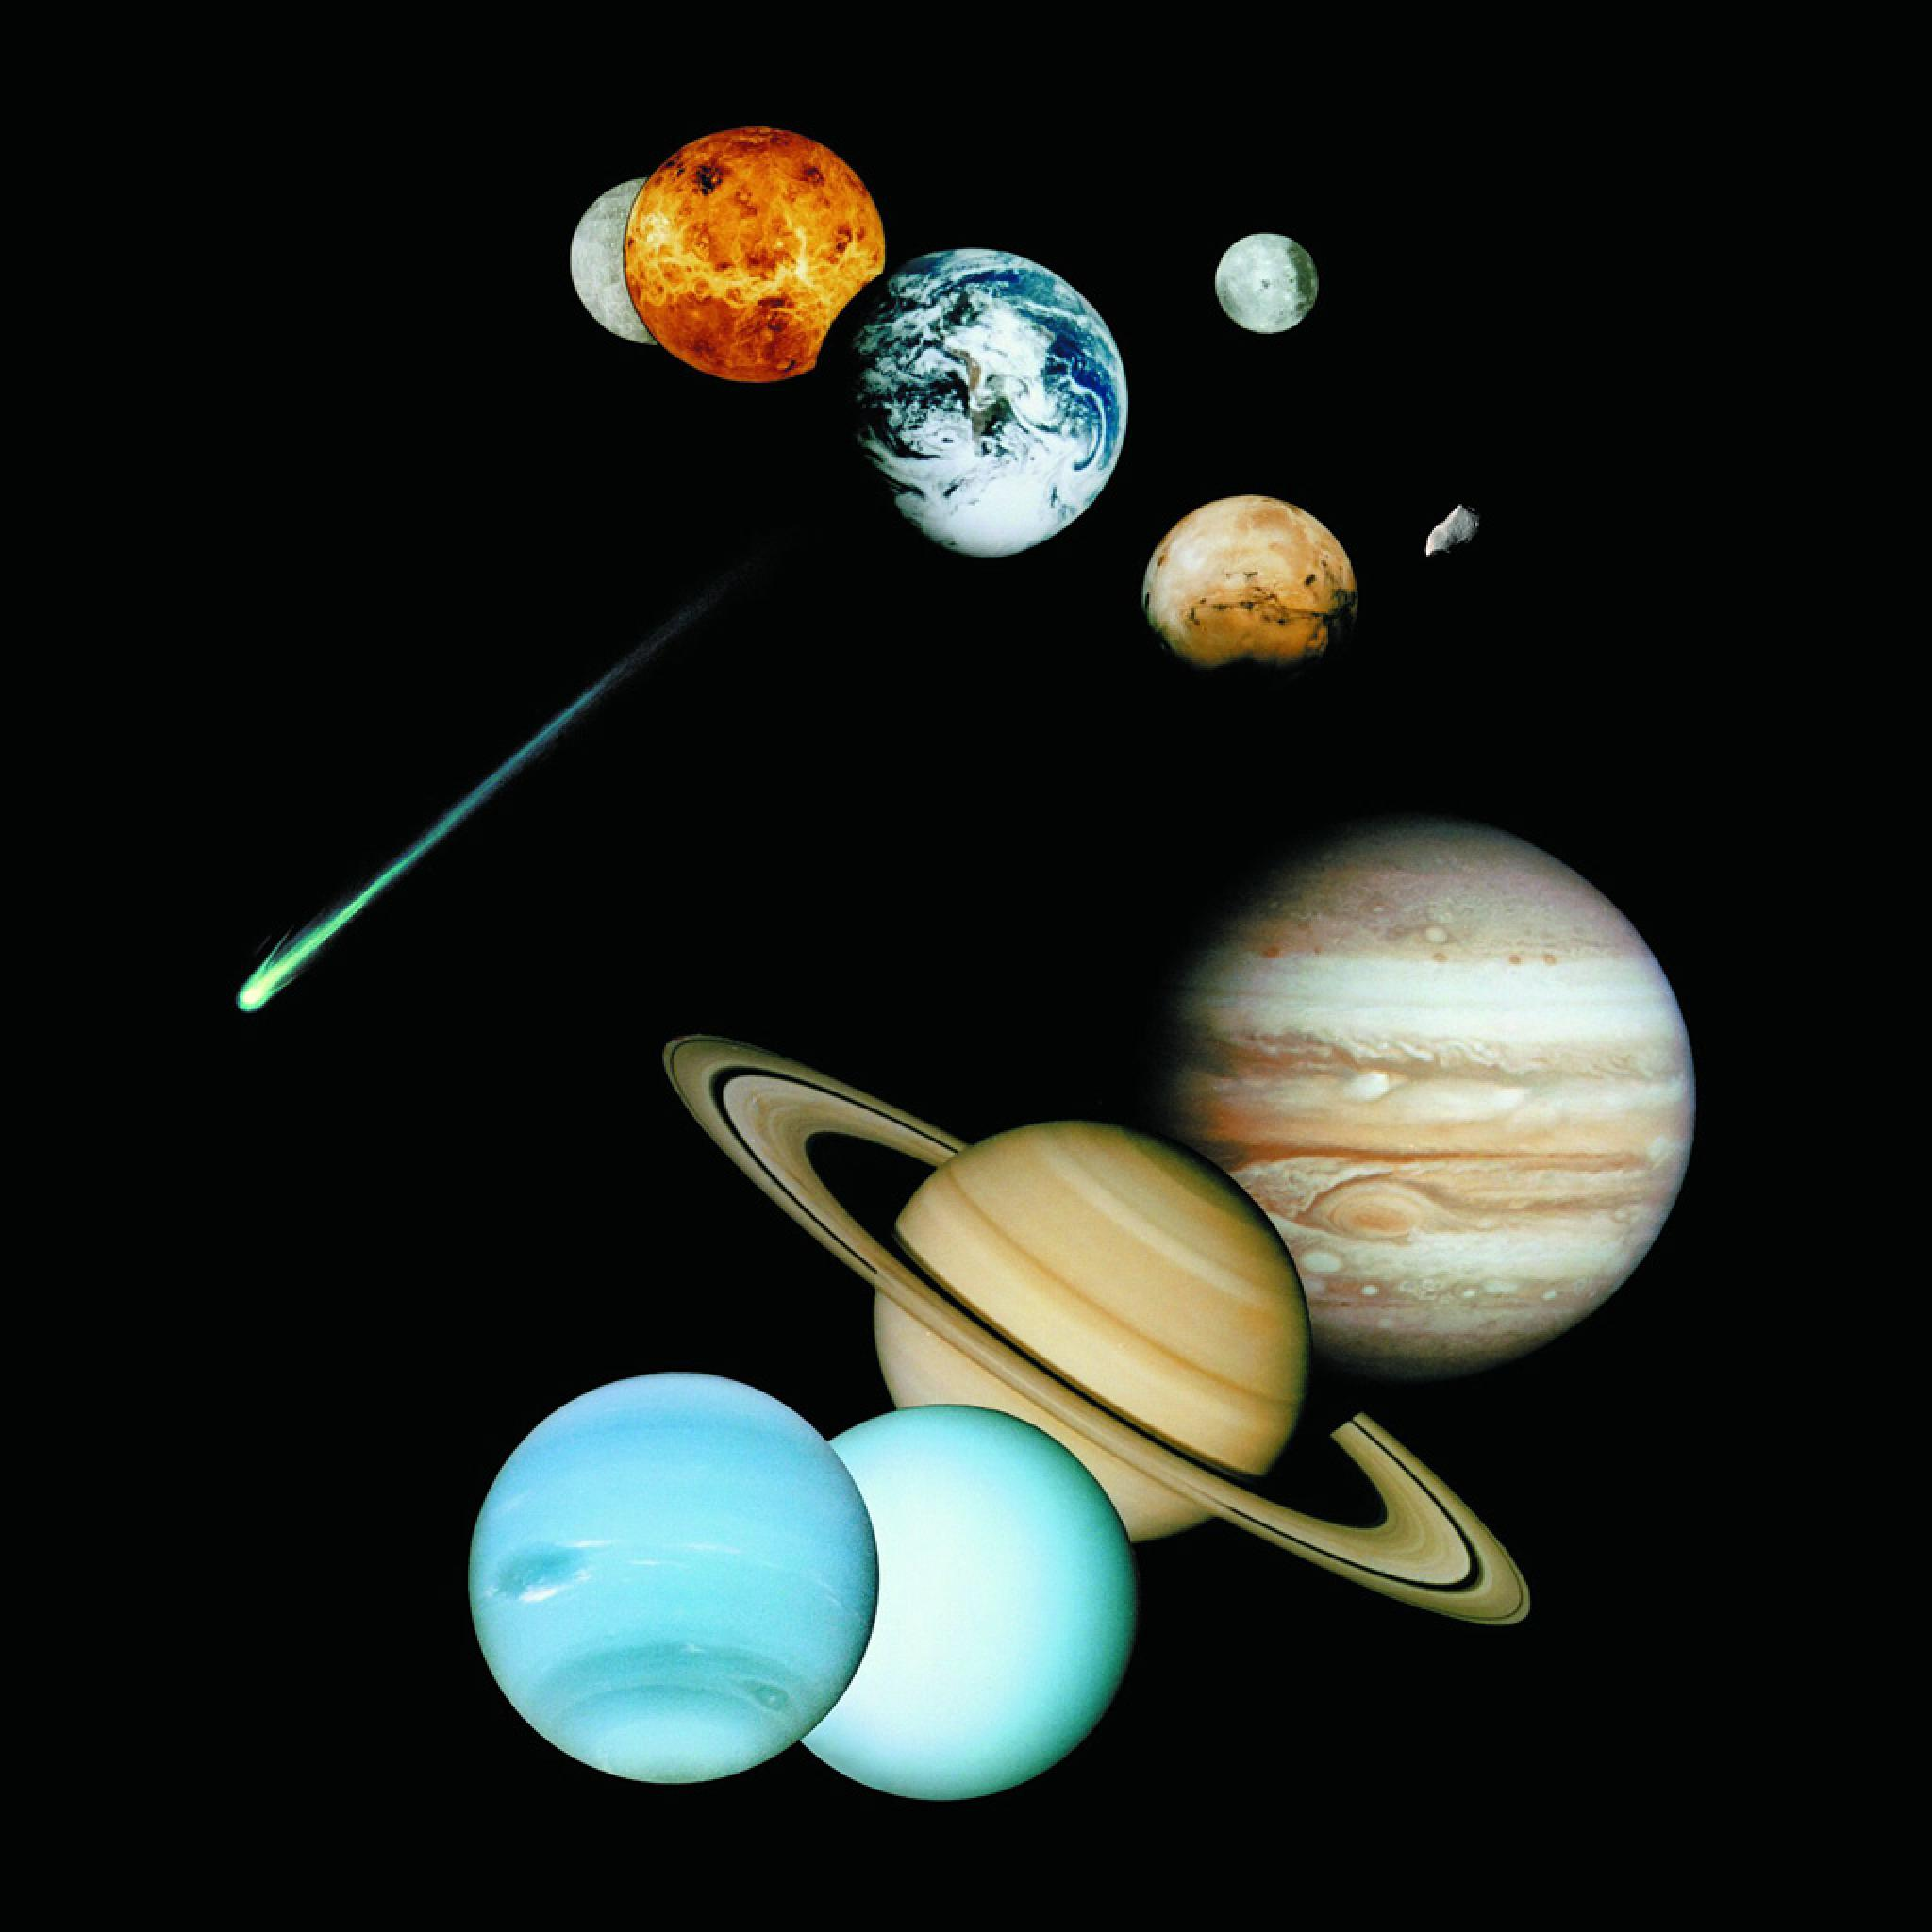 Nine Planets Solar System And Comets   iPad iPhone HD Wallpaper 2048x2048